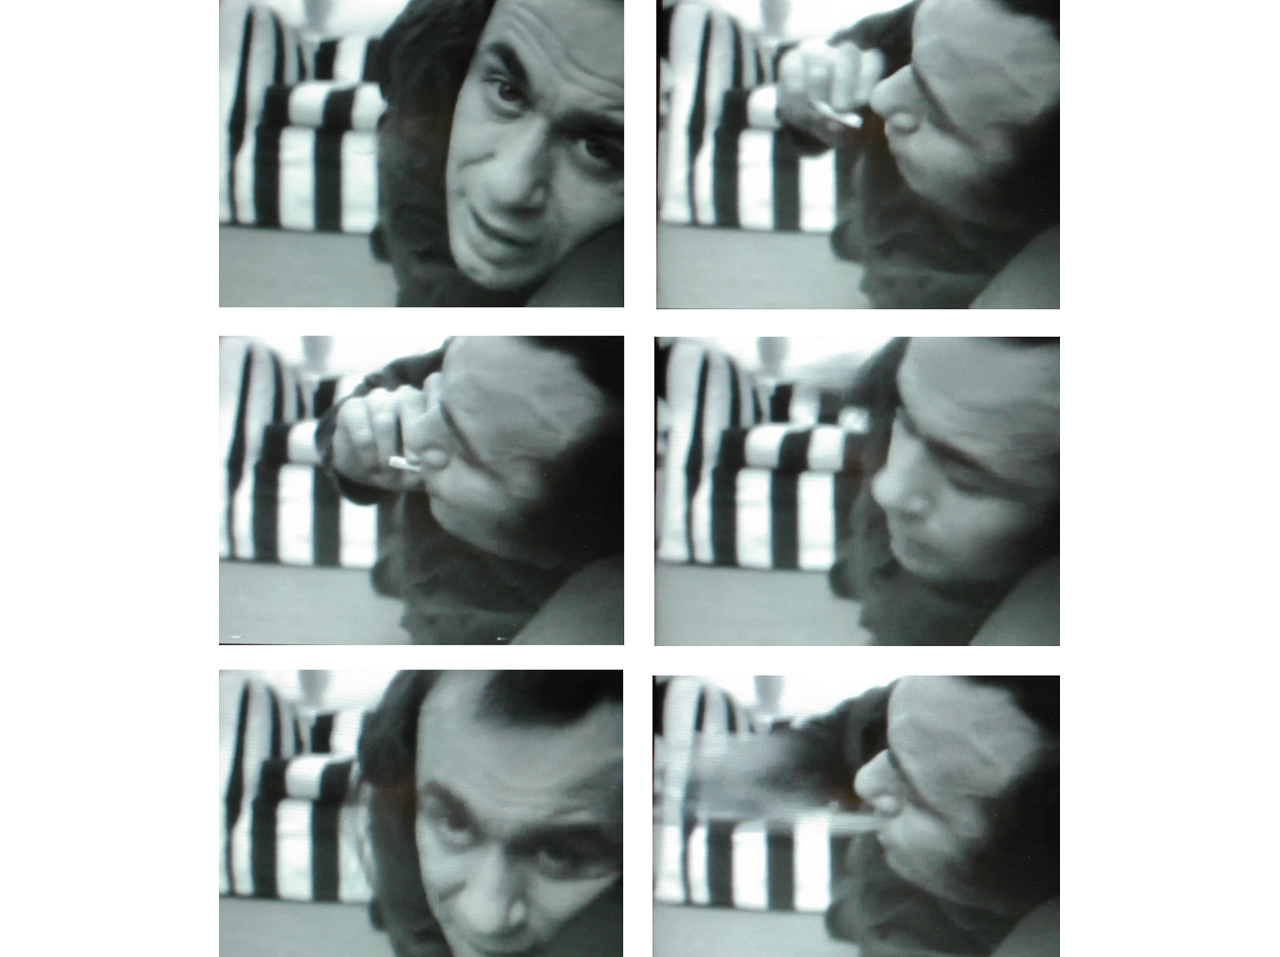 Vito Acconci, Theme Song, 1973. Courtesy: Acconci Studio, Brooklyn